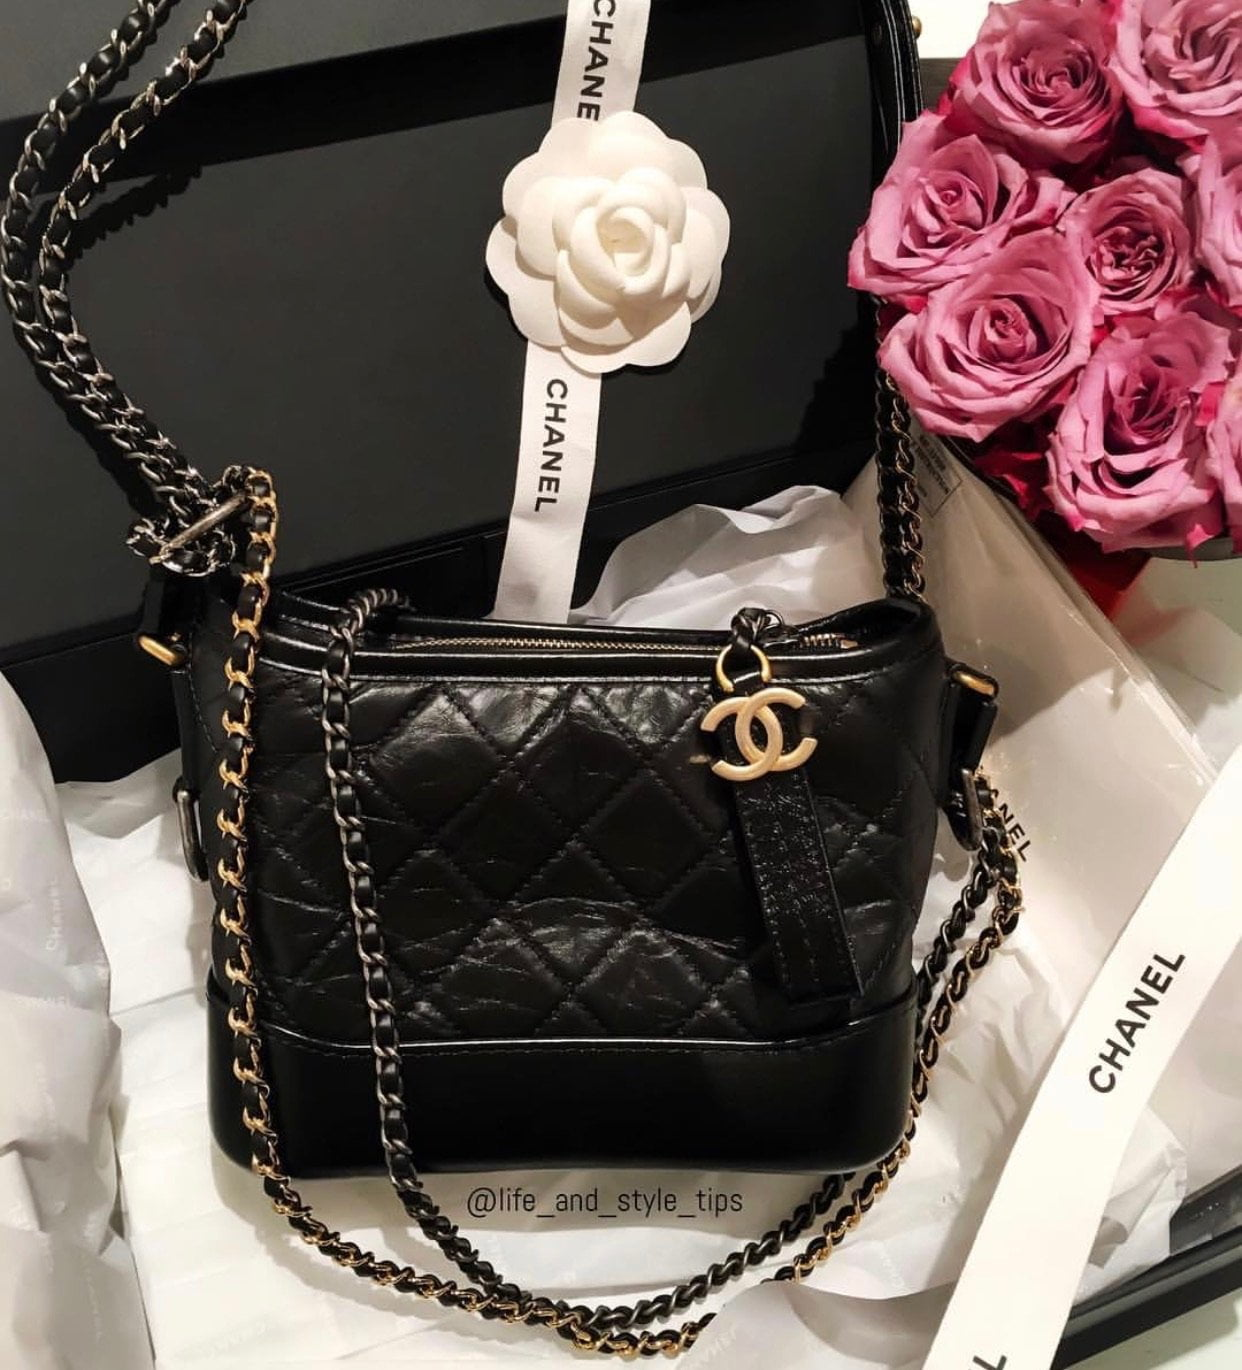 4b5278248cdbc9 Handbag Math: You Can Still Save Money Buying Chanel in Europe